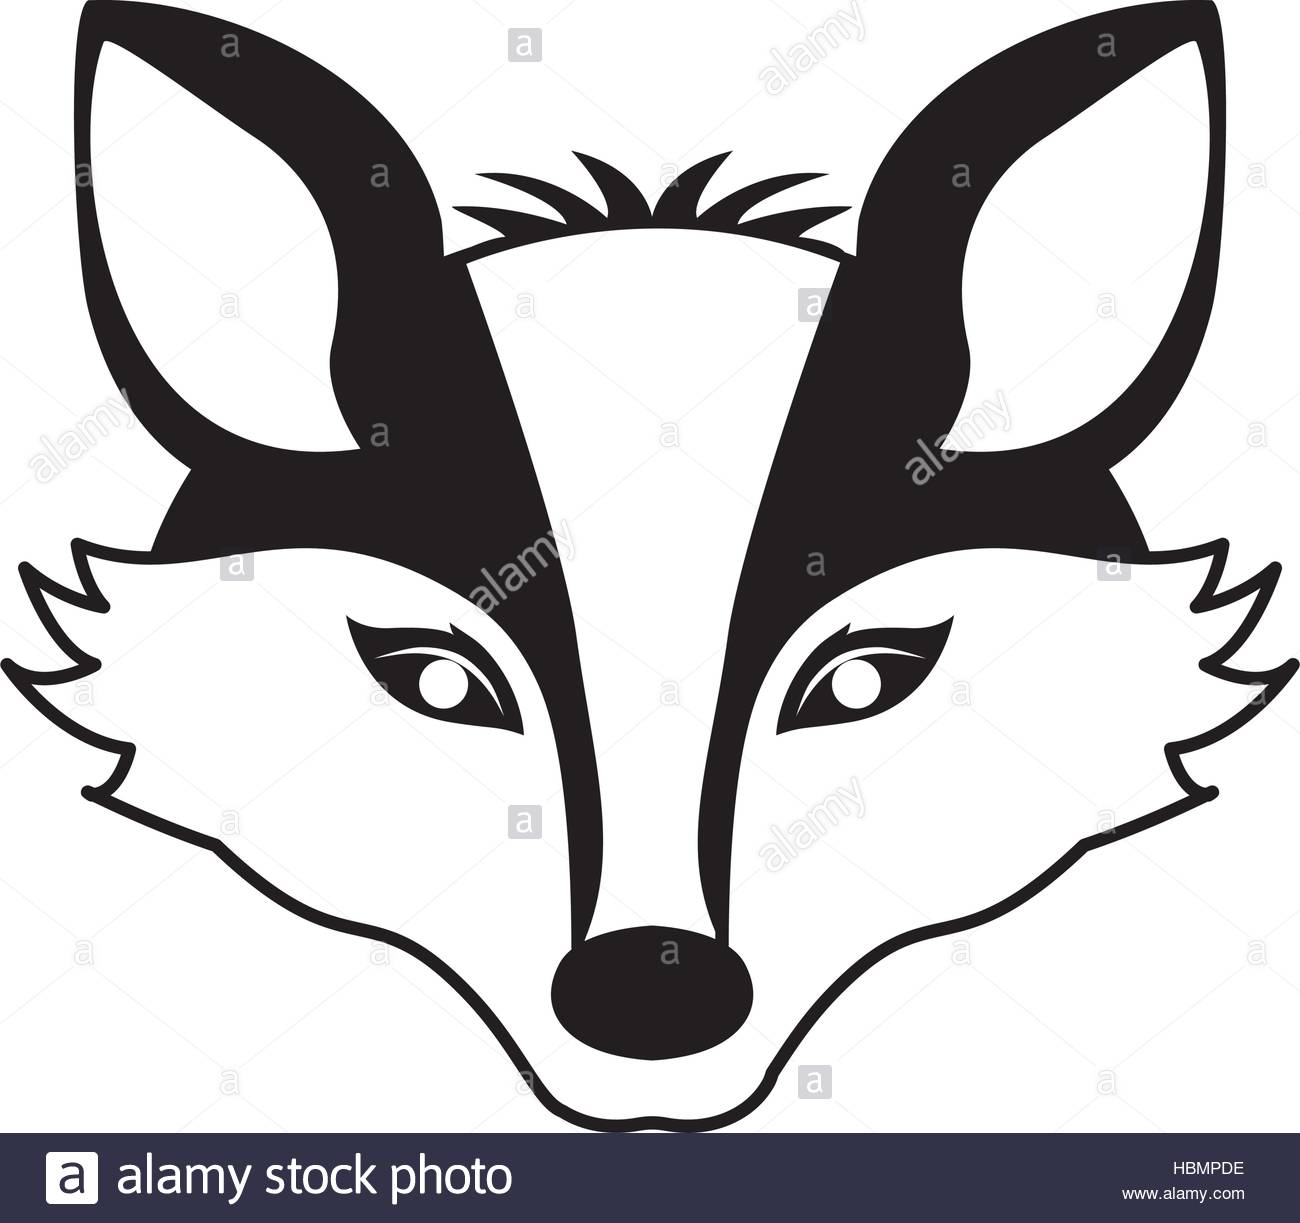 1300x1223 Silhouette Contour Monochrome With Fox Face Vector Illustration